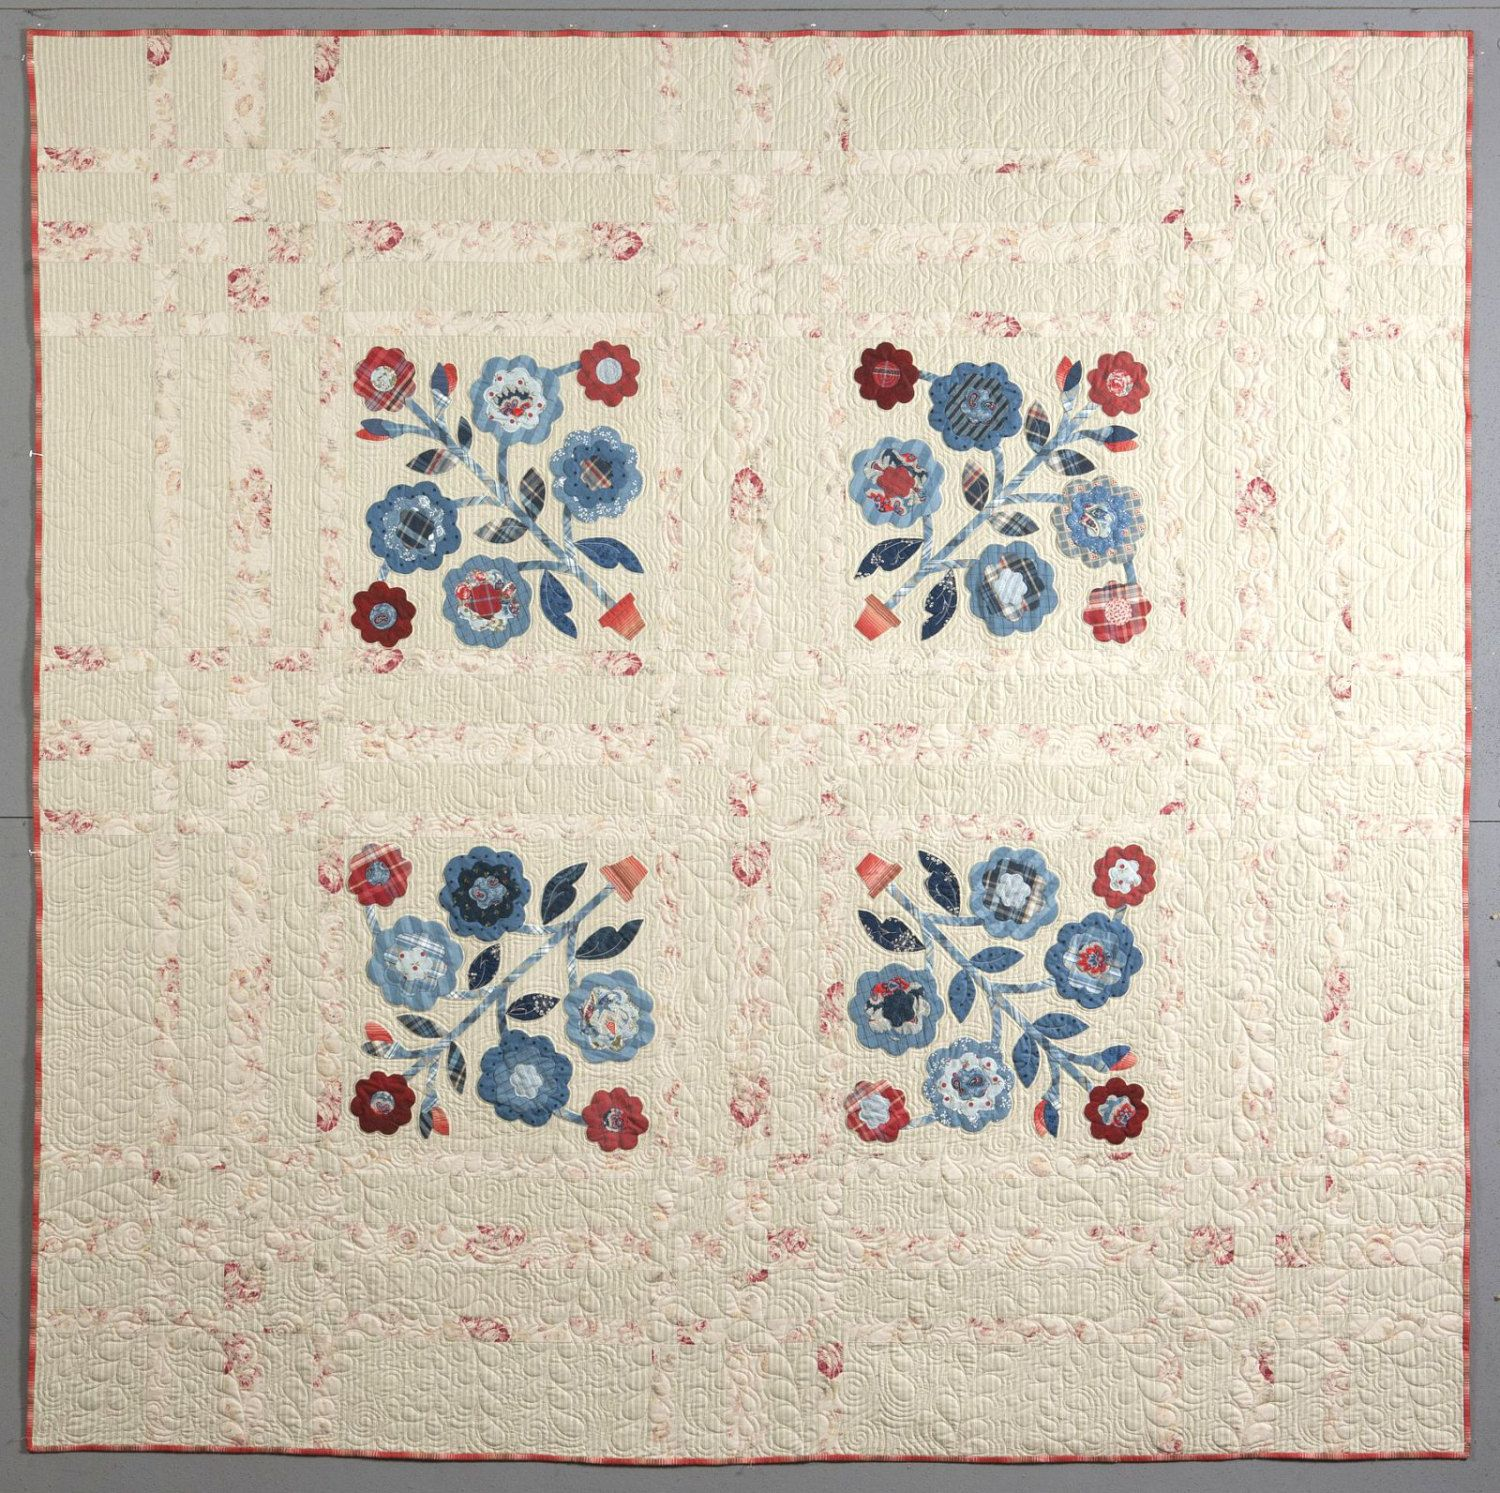 Summer Roses Quilt - as featured in the book American Summer by Polly Minick.